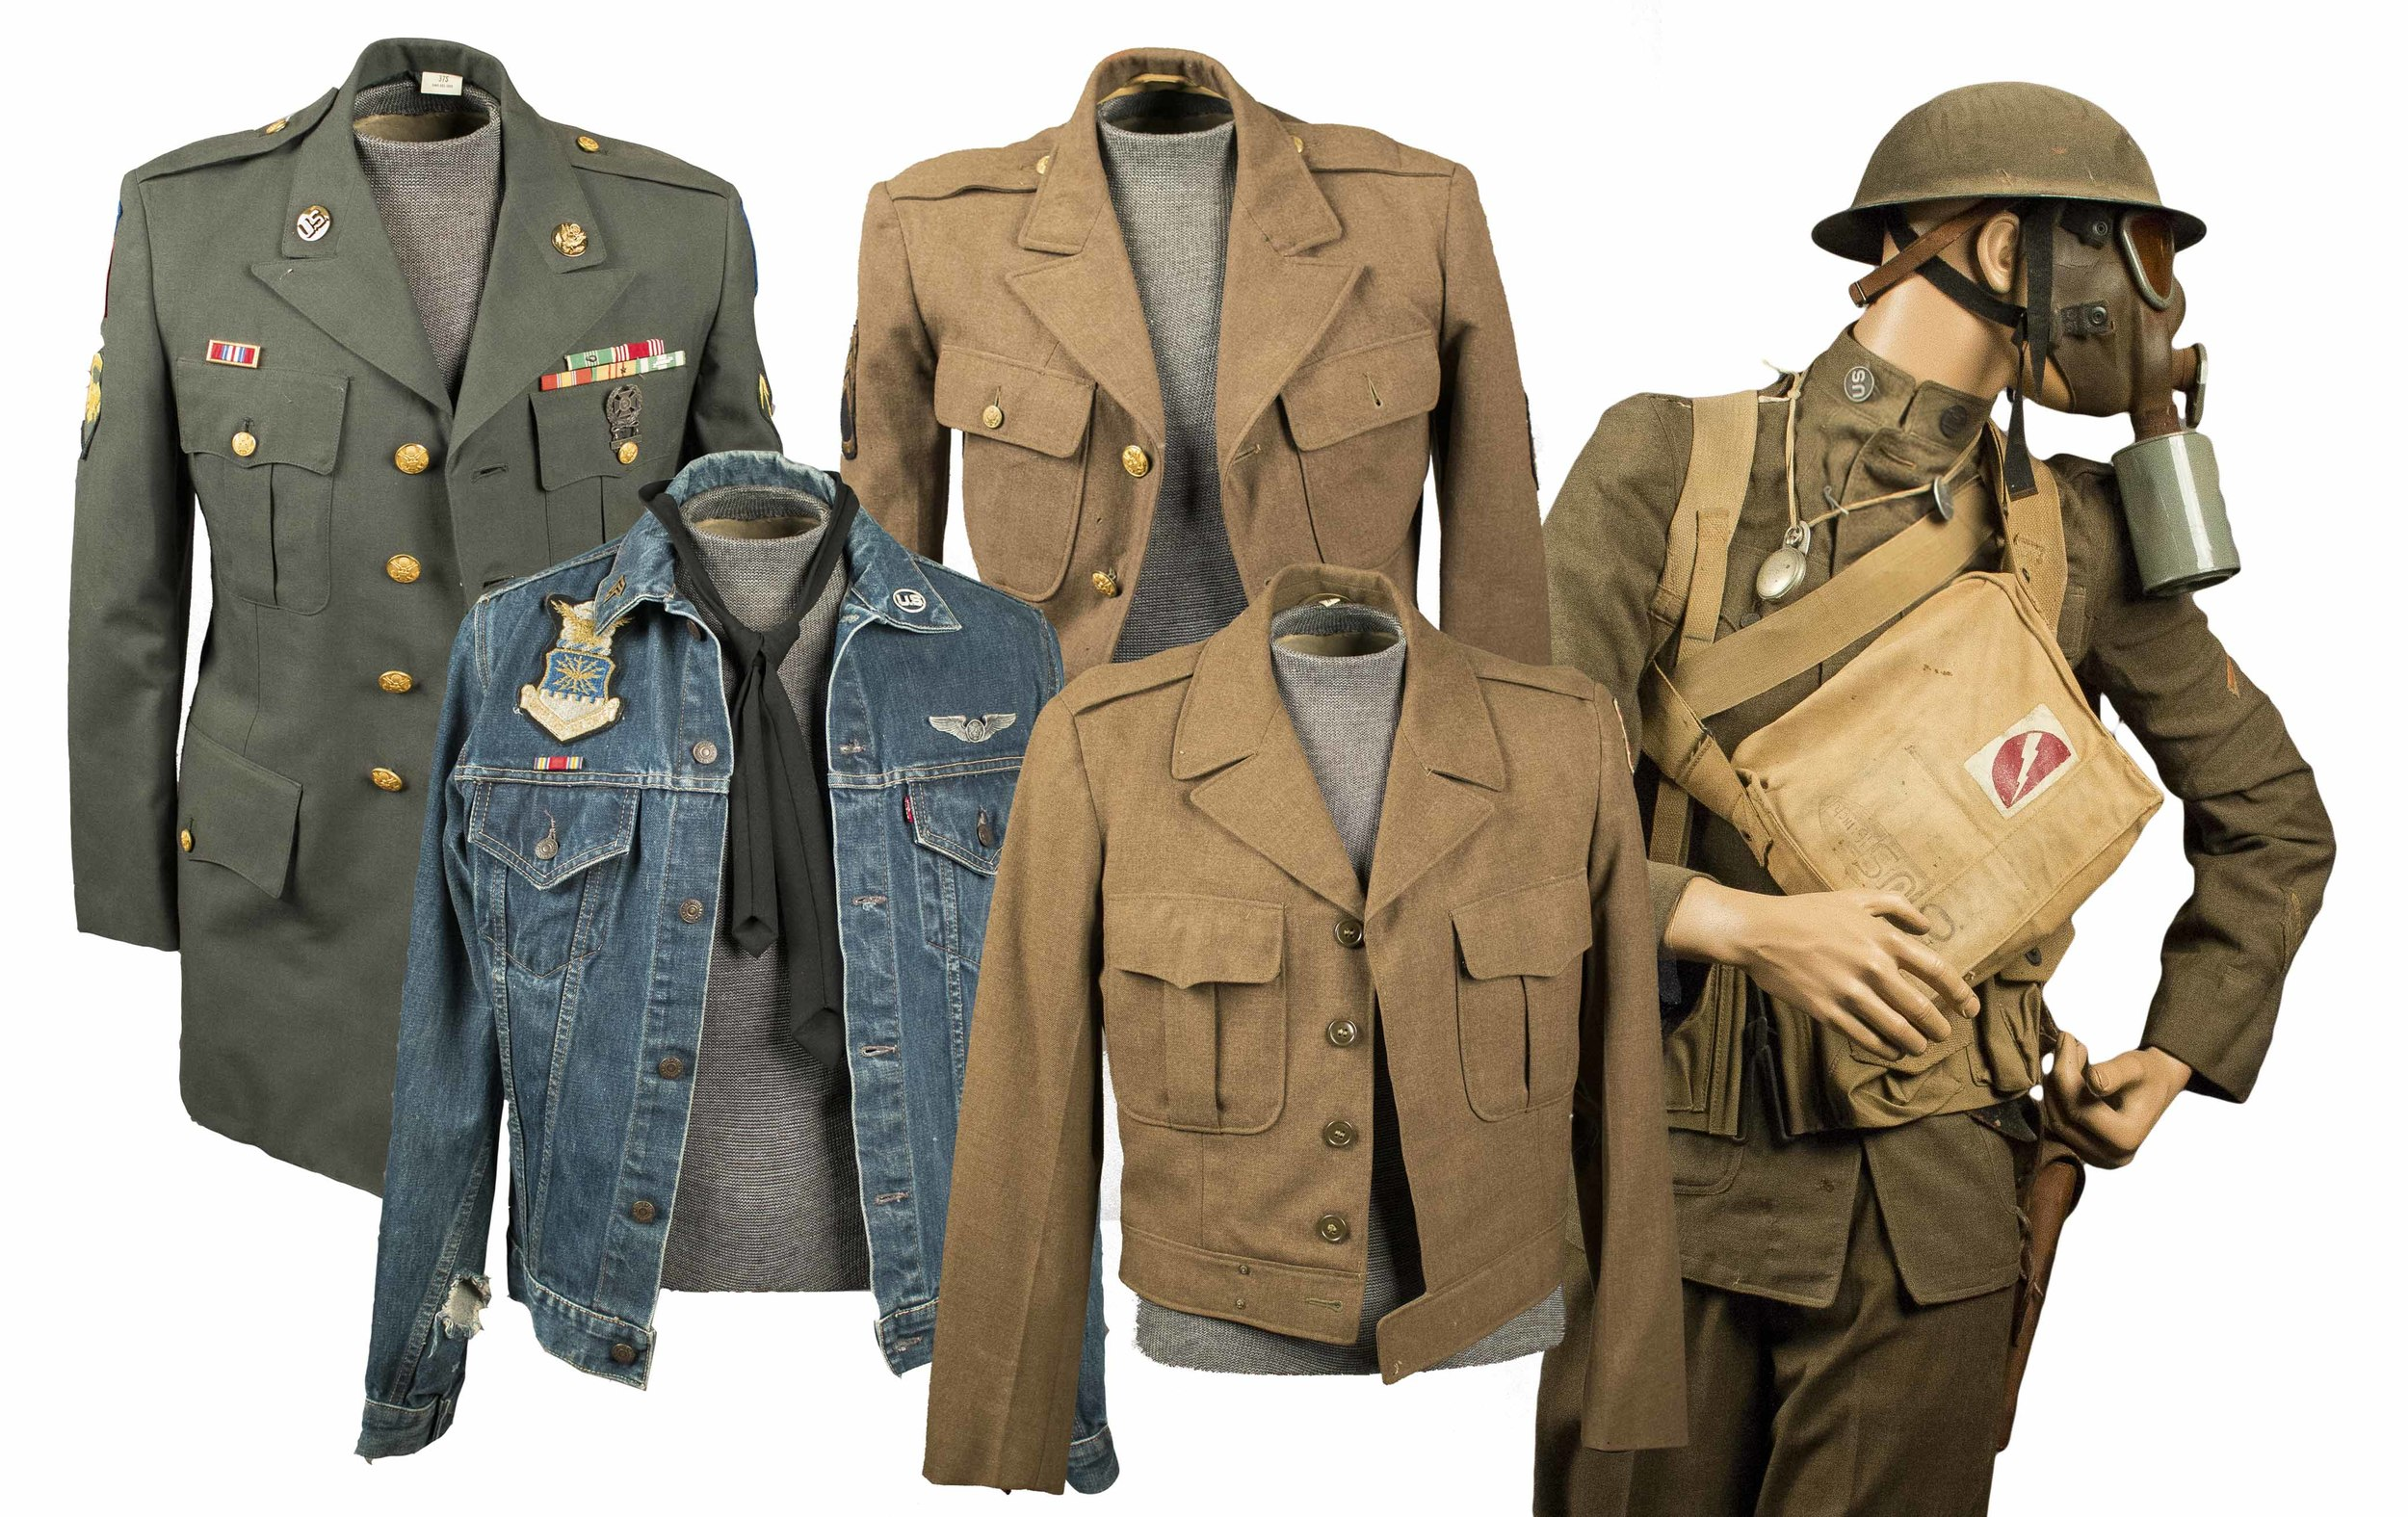 US WWI, WWII and Vietnam Era Uniforms and Gear and BAR Belt